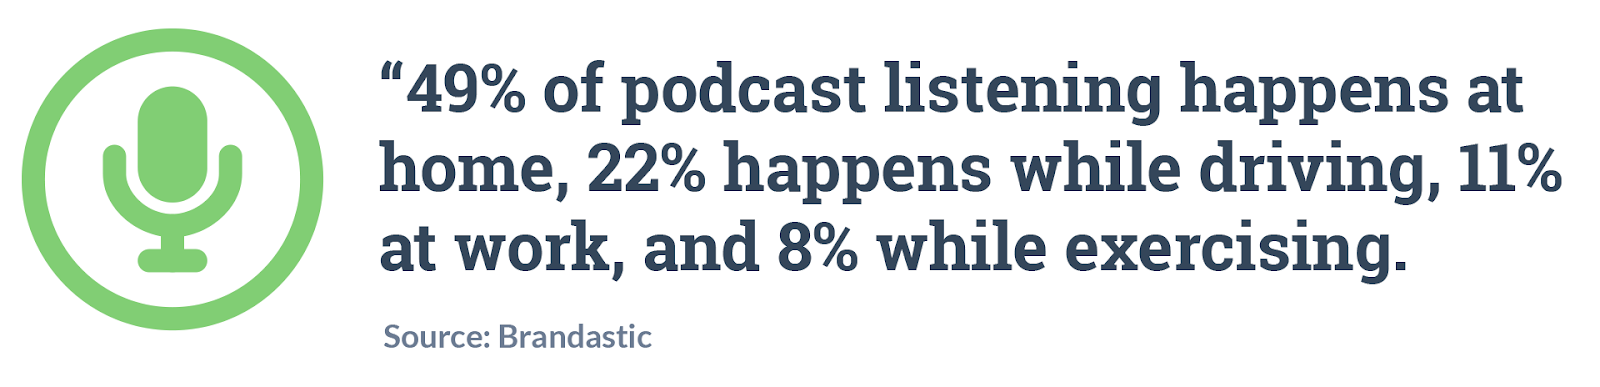 49% of podcast listening happens at home, 22% happens while driving, 11% at work, and 8% while exercising. Source: Brandtastic.